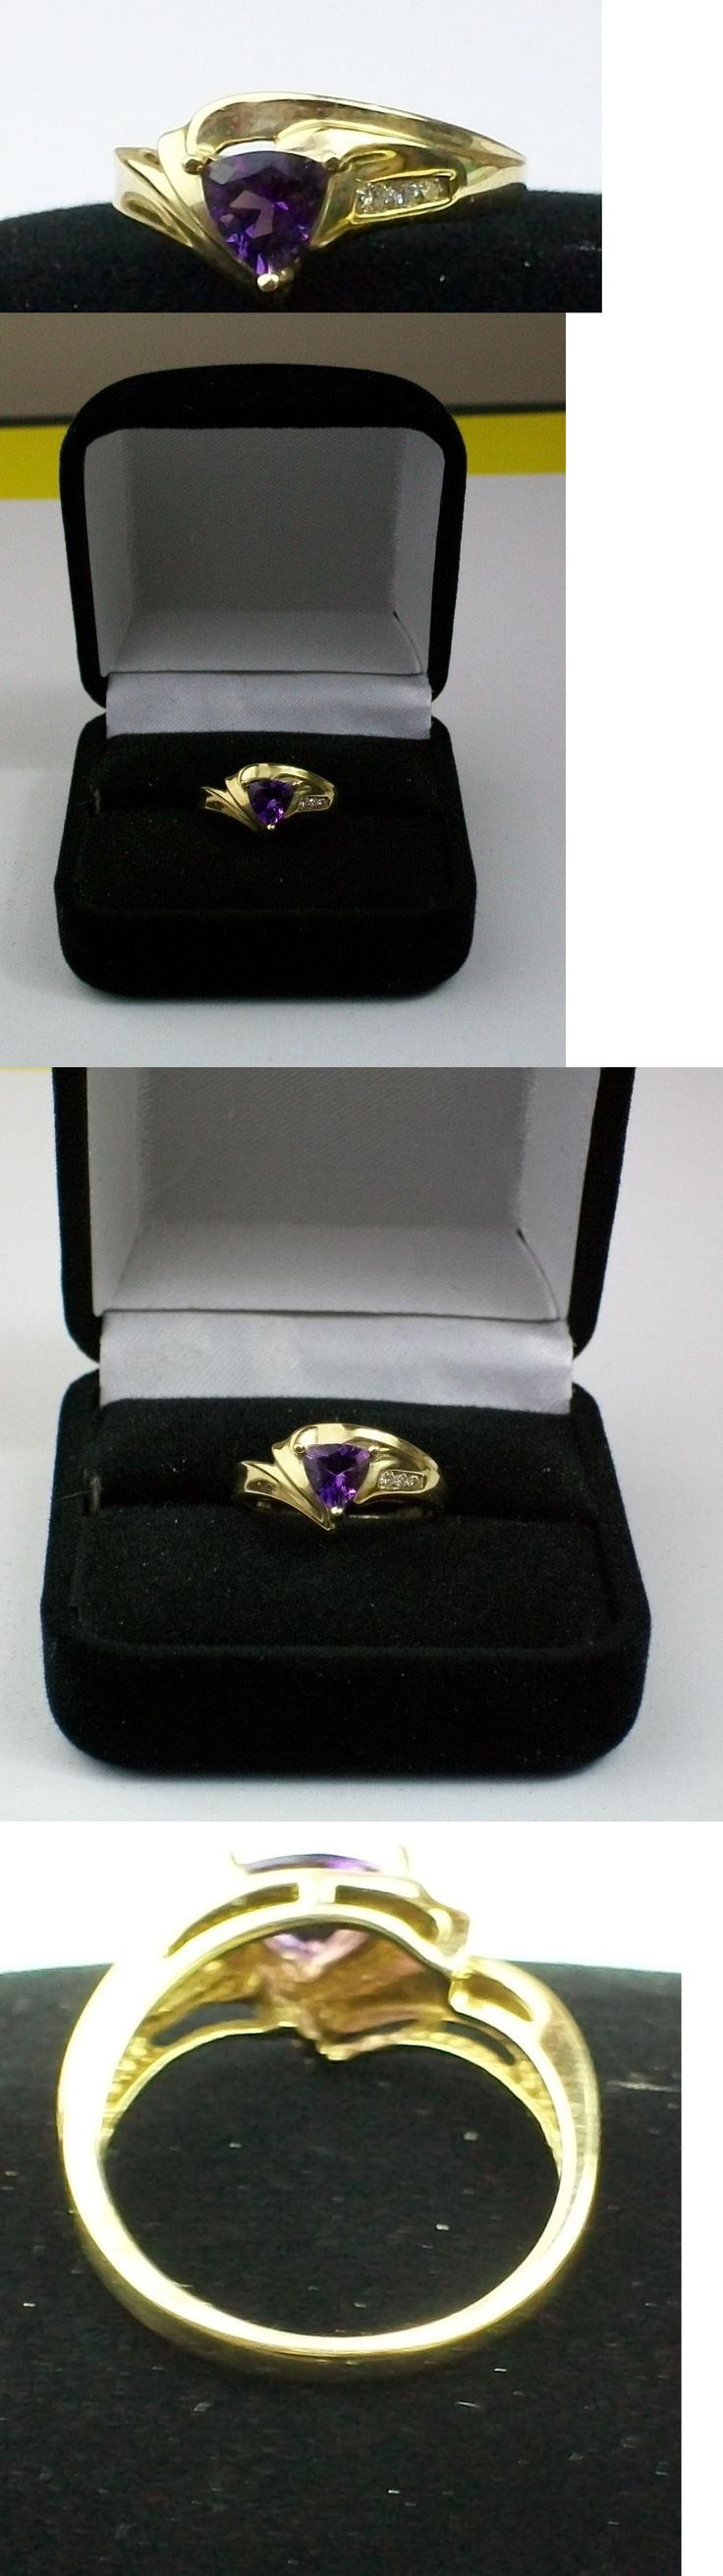 Gemstone 164343: Amethyst And Diamond Ring In 10K Yellow Gold Size 7 BUY IT NOW ONLY: $65.0